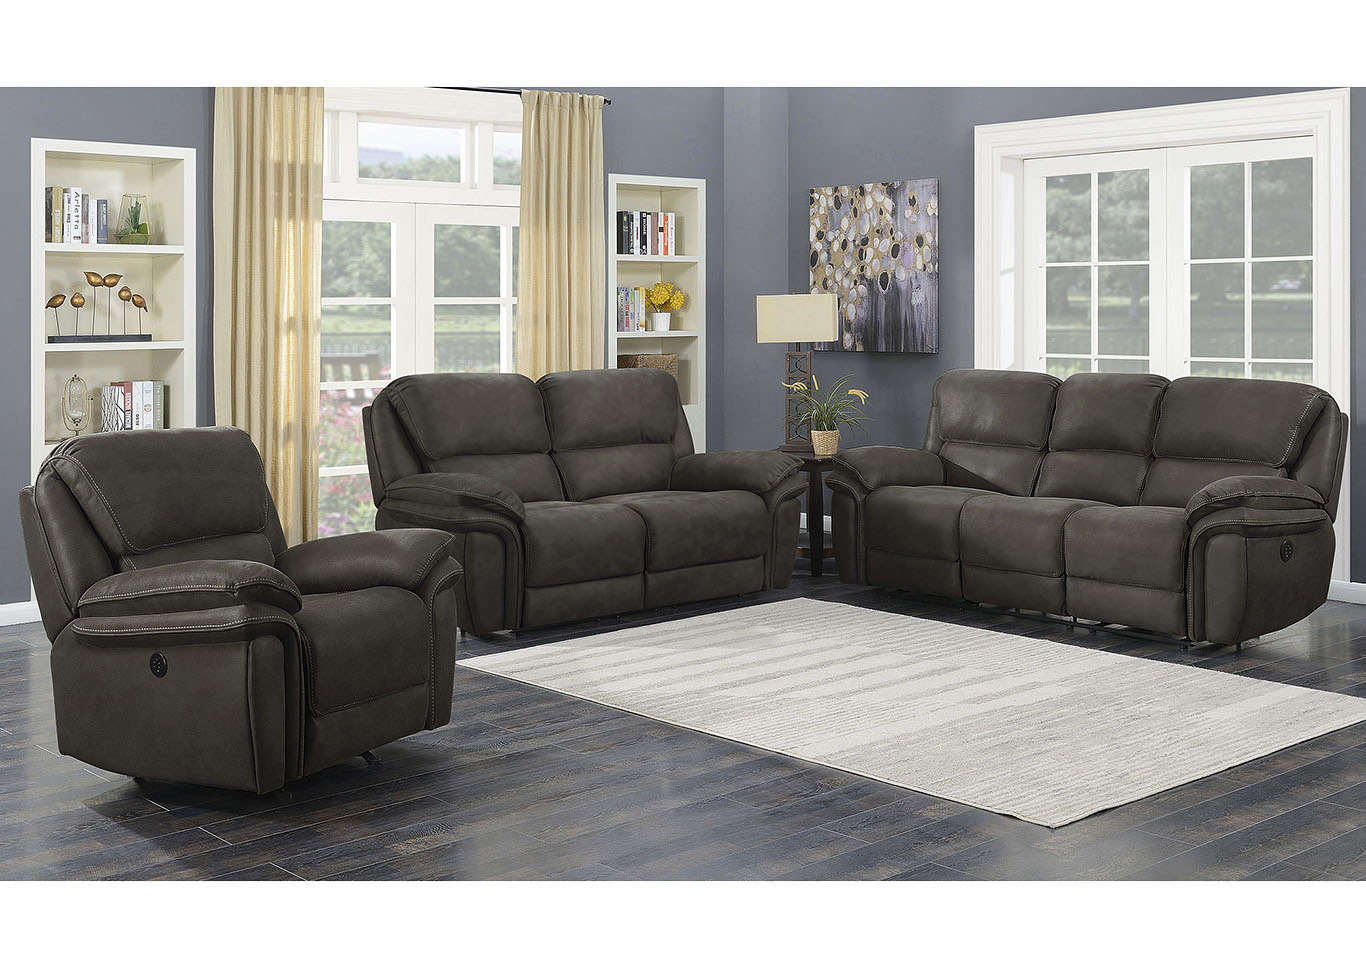 Cindy Gray Power Motion 3 Piece, 3 Piece Living Room Sets